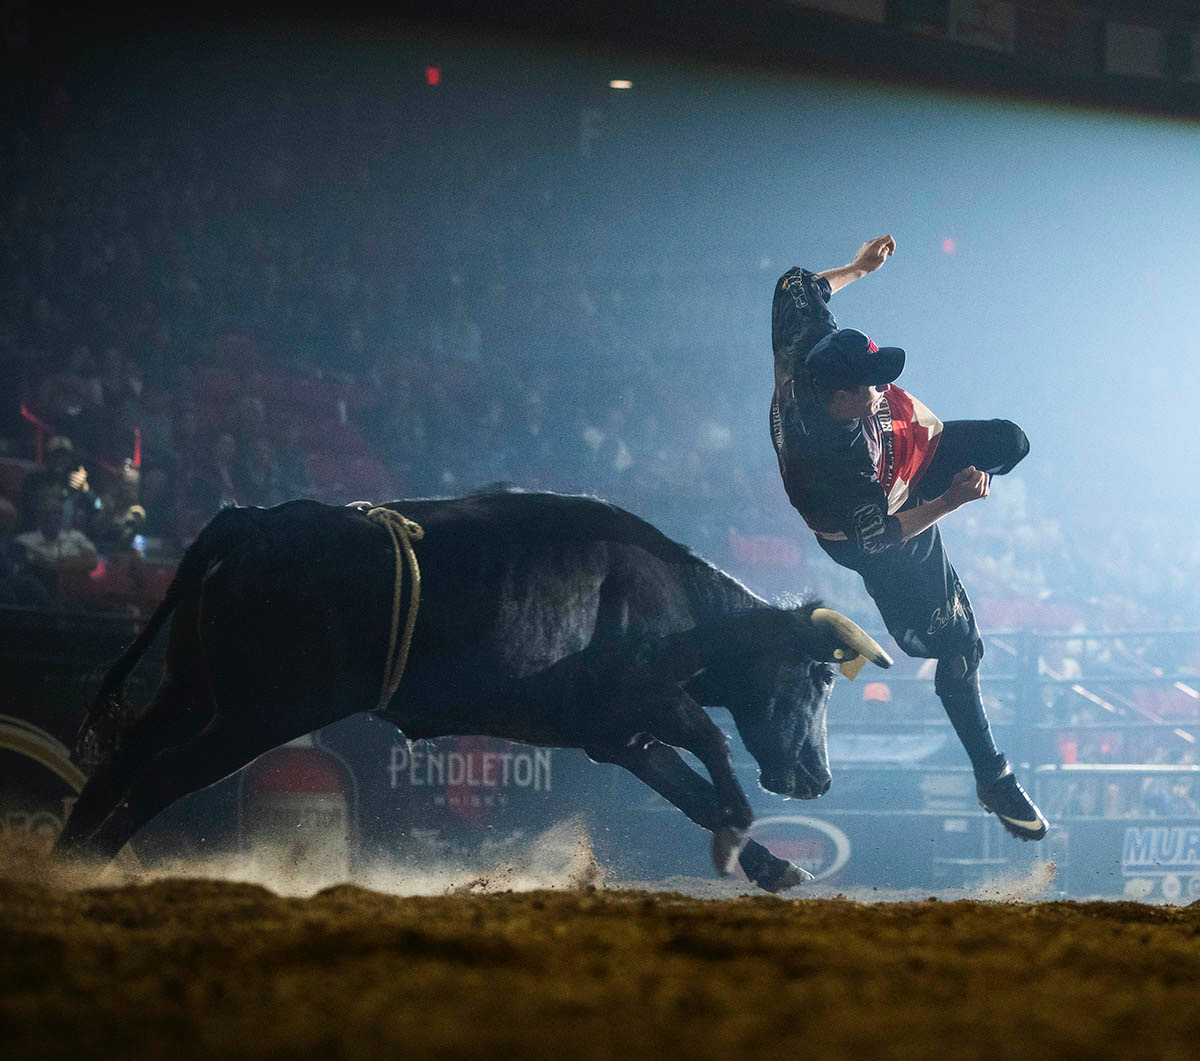 Aaron Mercer of Calgary, Alberta, competes at the Alpha Bull-Bullfighters Only event in Moose Jaw, Saskatchewan, earlier this month. His win there pushed him to No. 1 in the BFO Pendleton Whisky World Standings and stands as proof of the excellent freestyle bullfighting that has been established by BFO Canada. (PHOTO BY TODD KOROL)